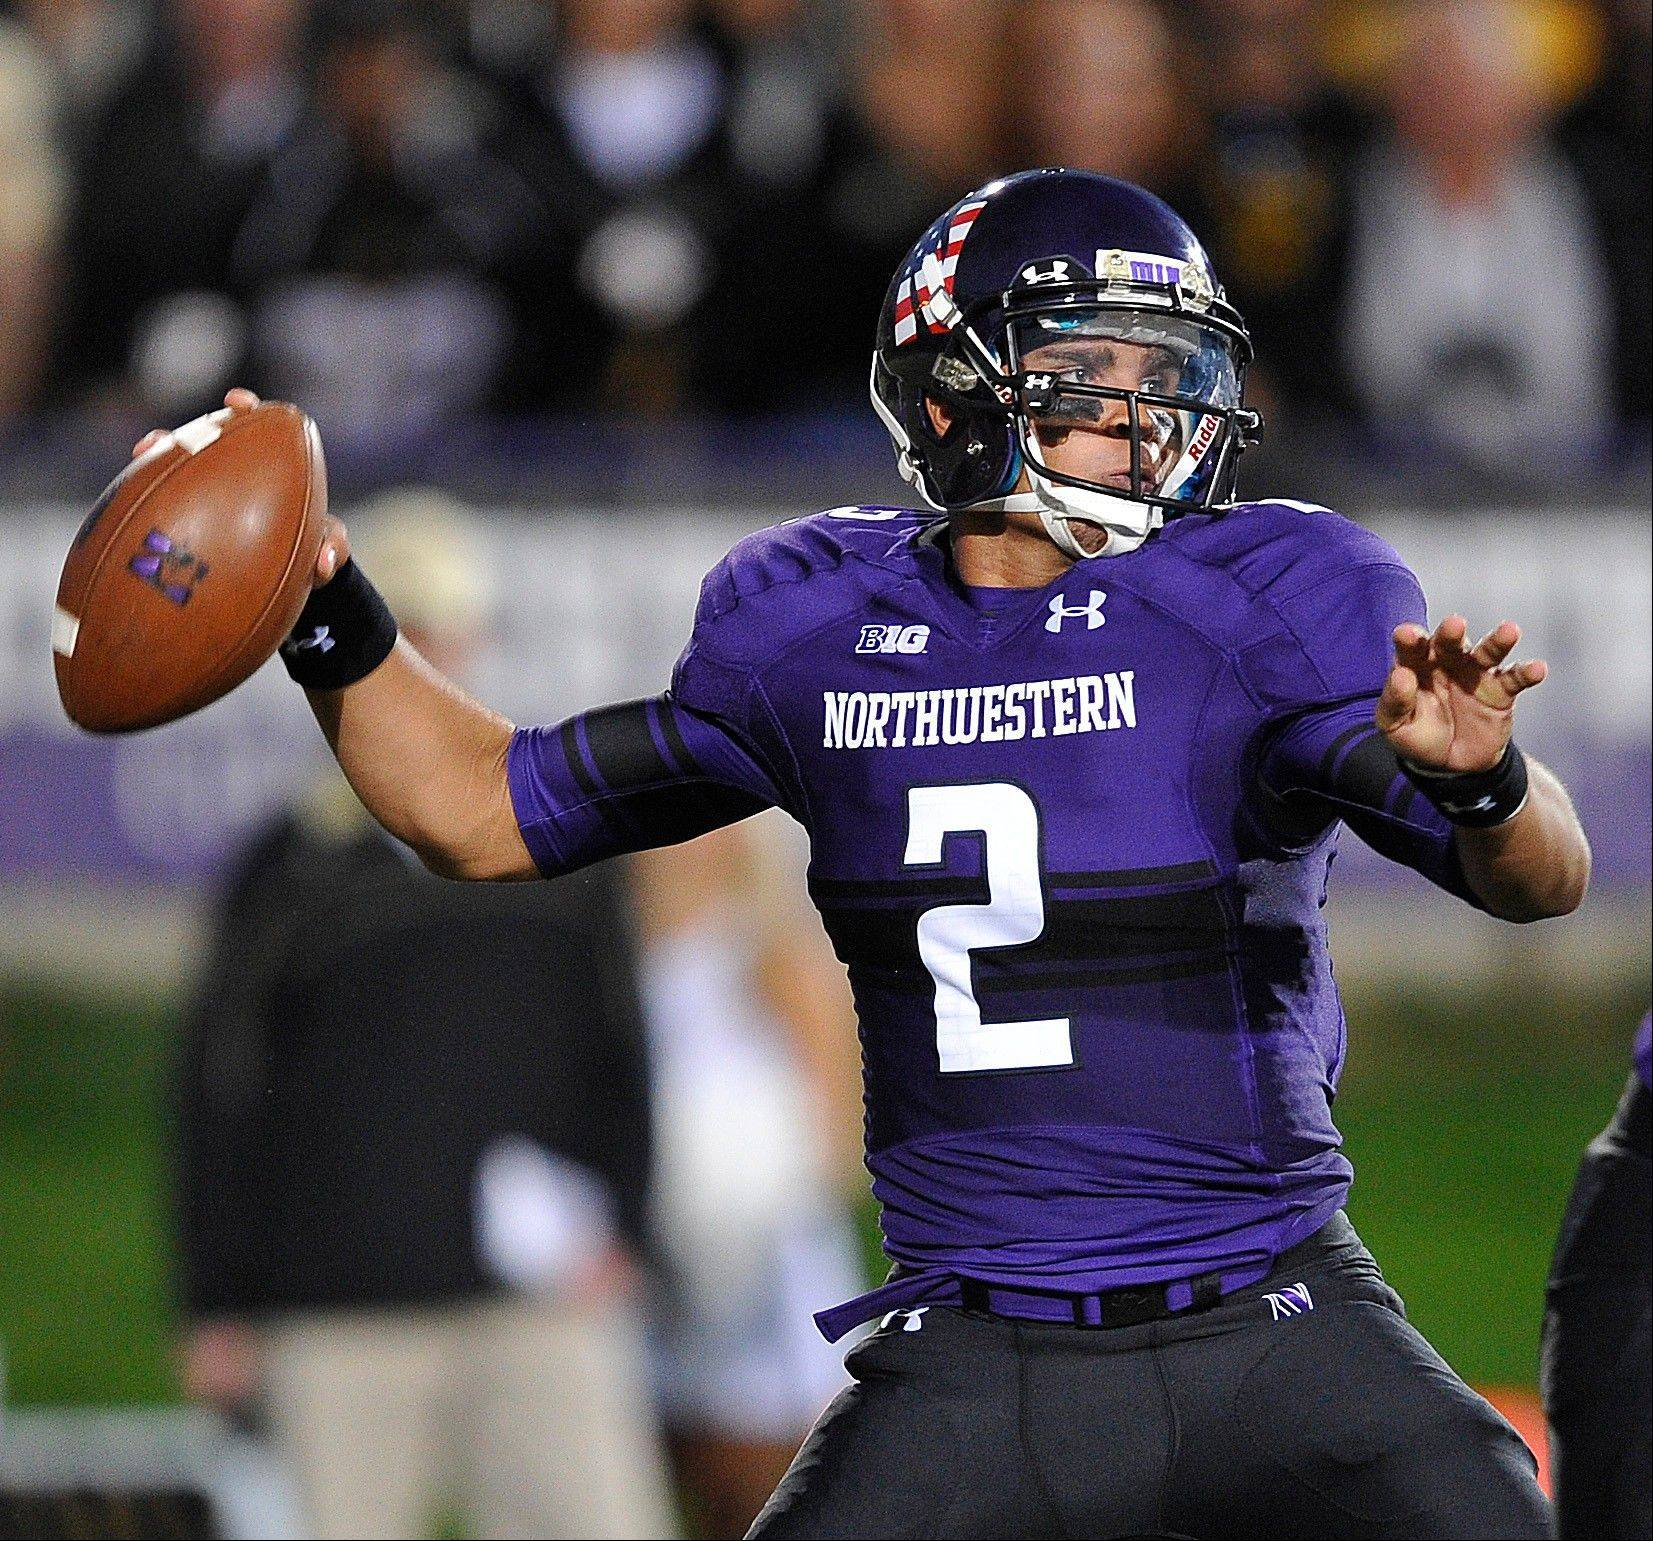 Kain Colter throws the ball downfield against Vanderbilt last Saturday. Colter is getting part of his pass protection this season from Montini grad Chuck Porcelli, a backup during his previous four years in Evanston.